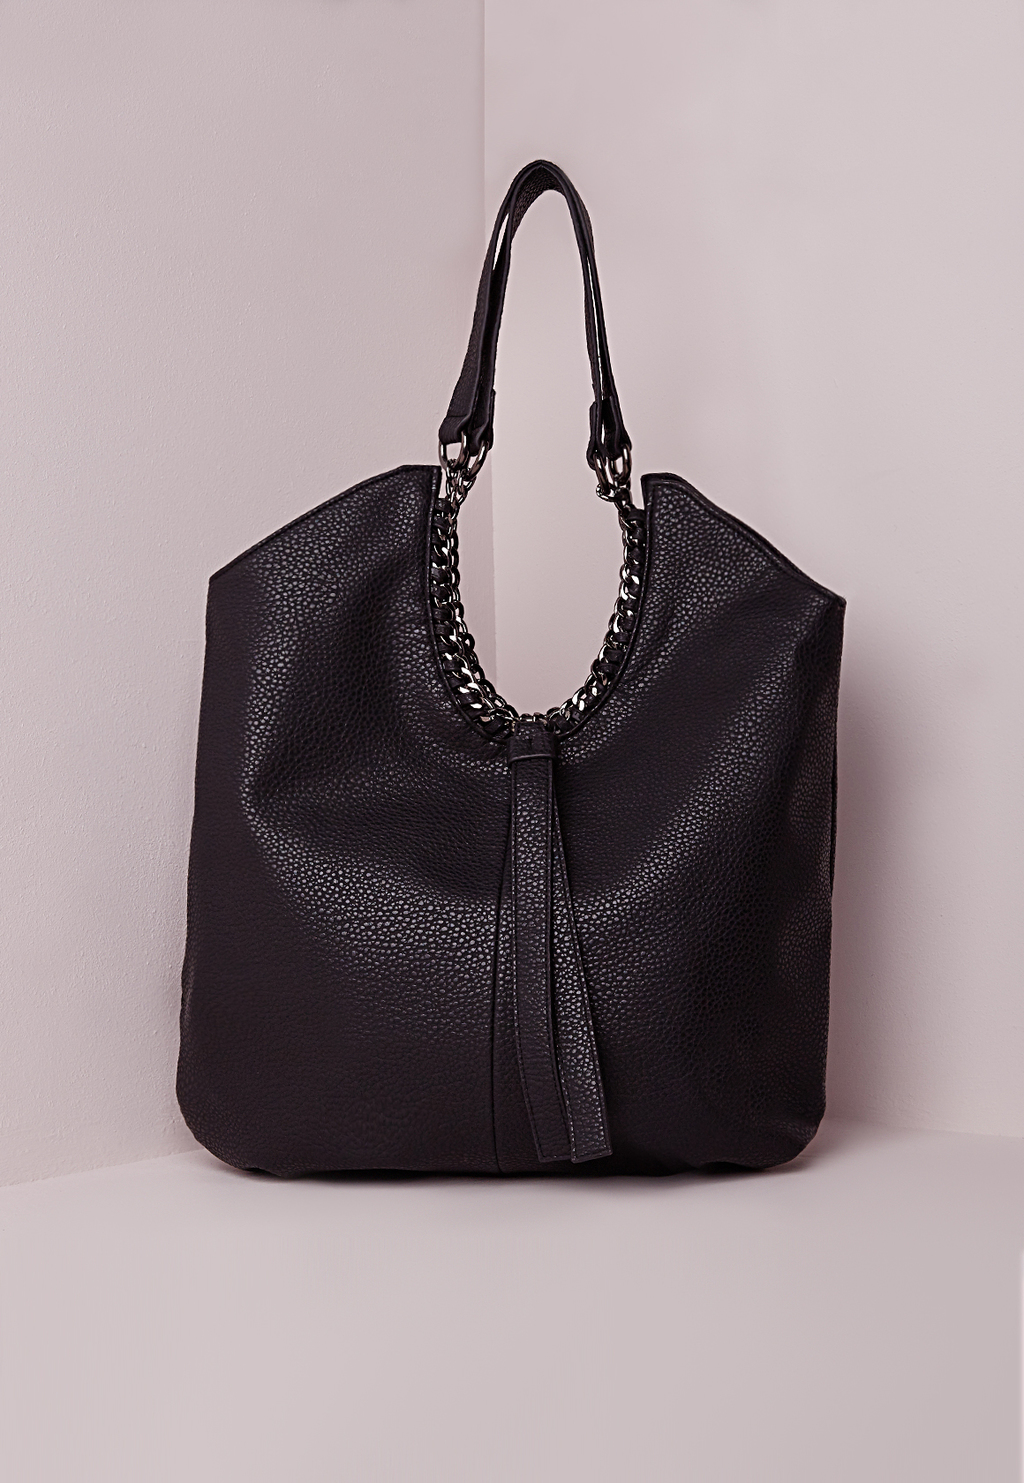 Chain Edge Slouch Bag Black, Black - predominant colour: black; occasions: casual, creative work; type of pattern: standard; style: shoulder; length: shoulder (tucks under arm); size: standard; material: faux leather; pattern: plain; finish: plain; embellishment: chain/metal; season: s/s 2016; wardrobe: investment